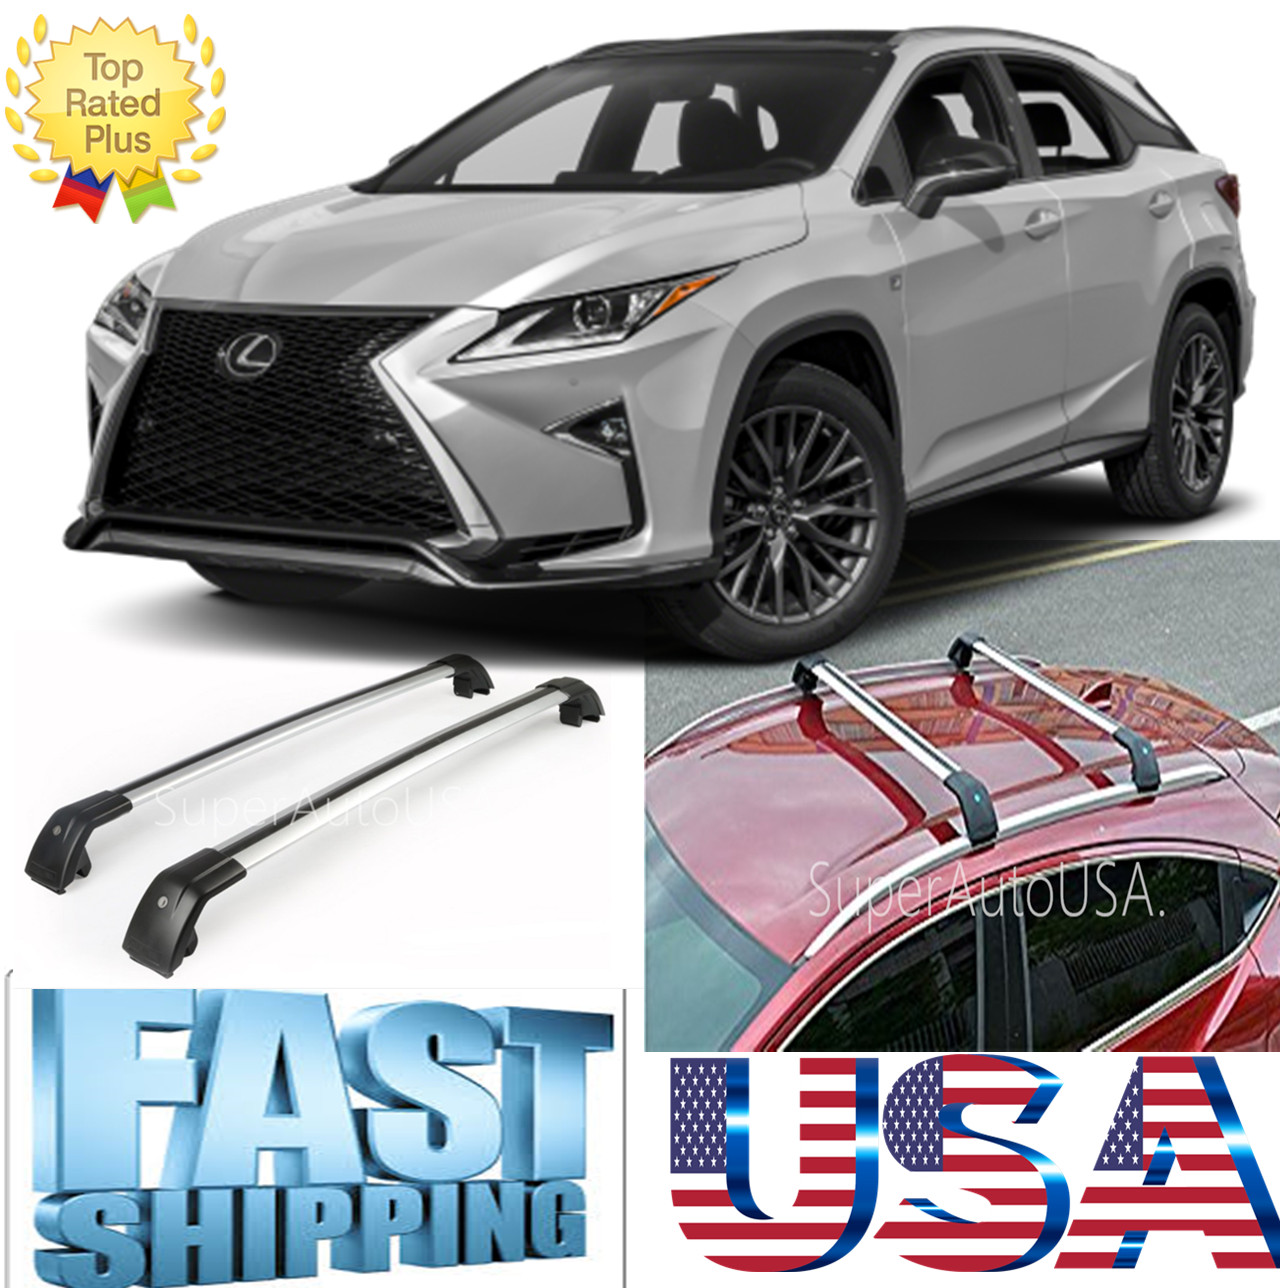 Toyota Carrier Sub Assy Rr Partnumber 4230520240: Top Roof Rack For LEXUS RX350/F Sport/HYBRID Baggage